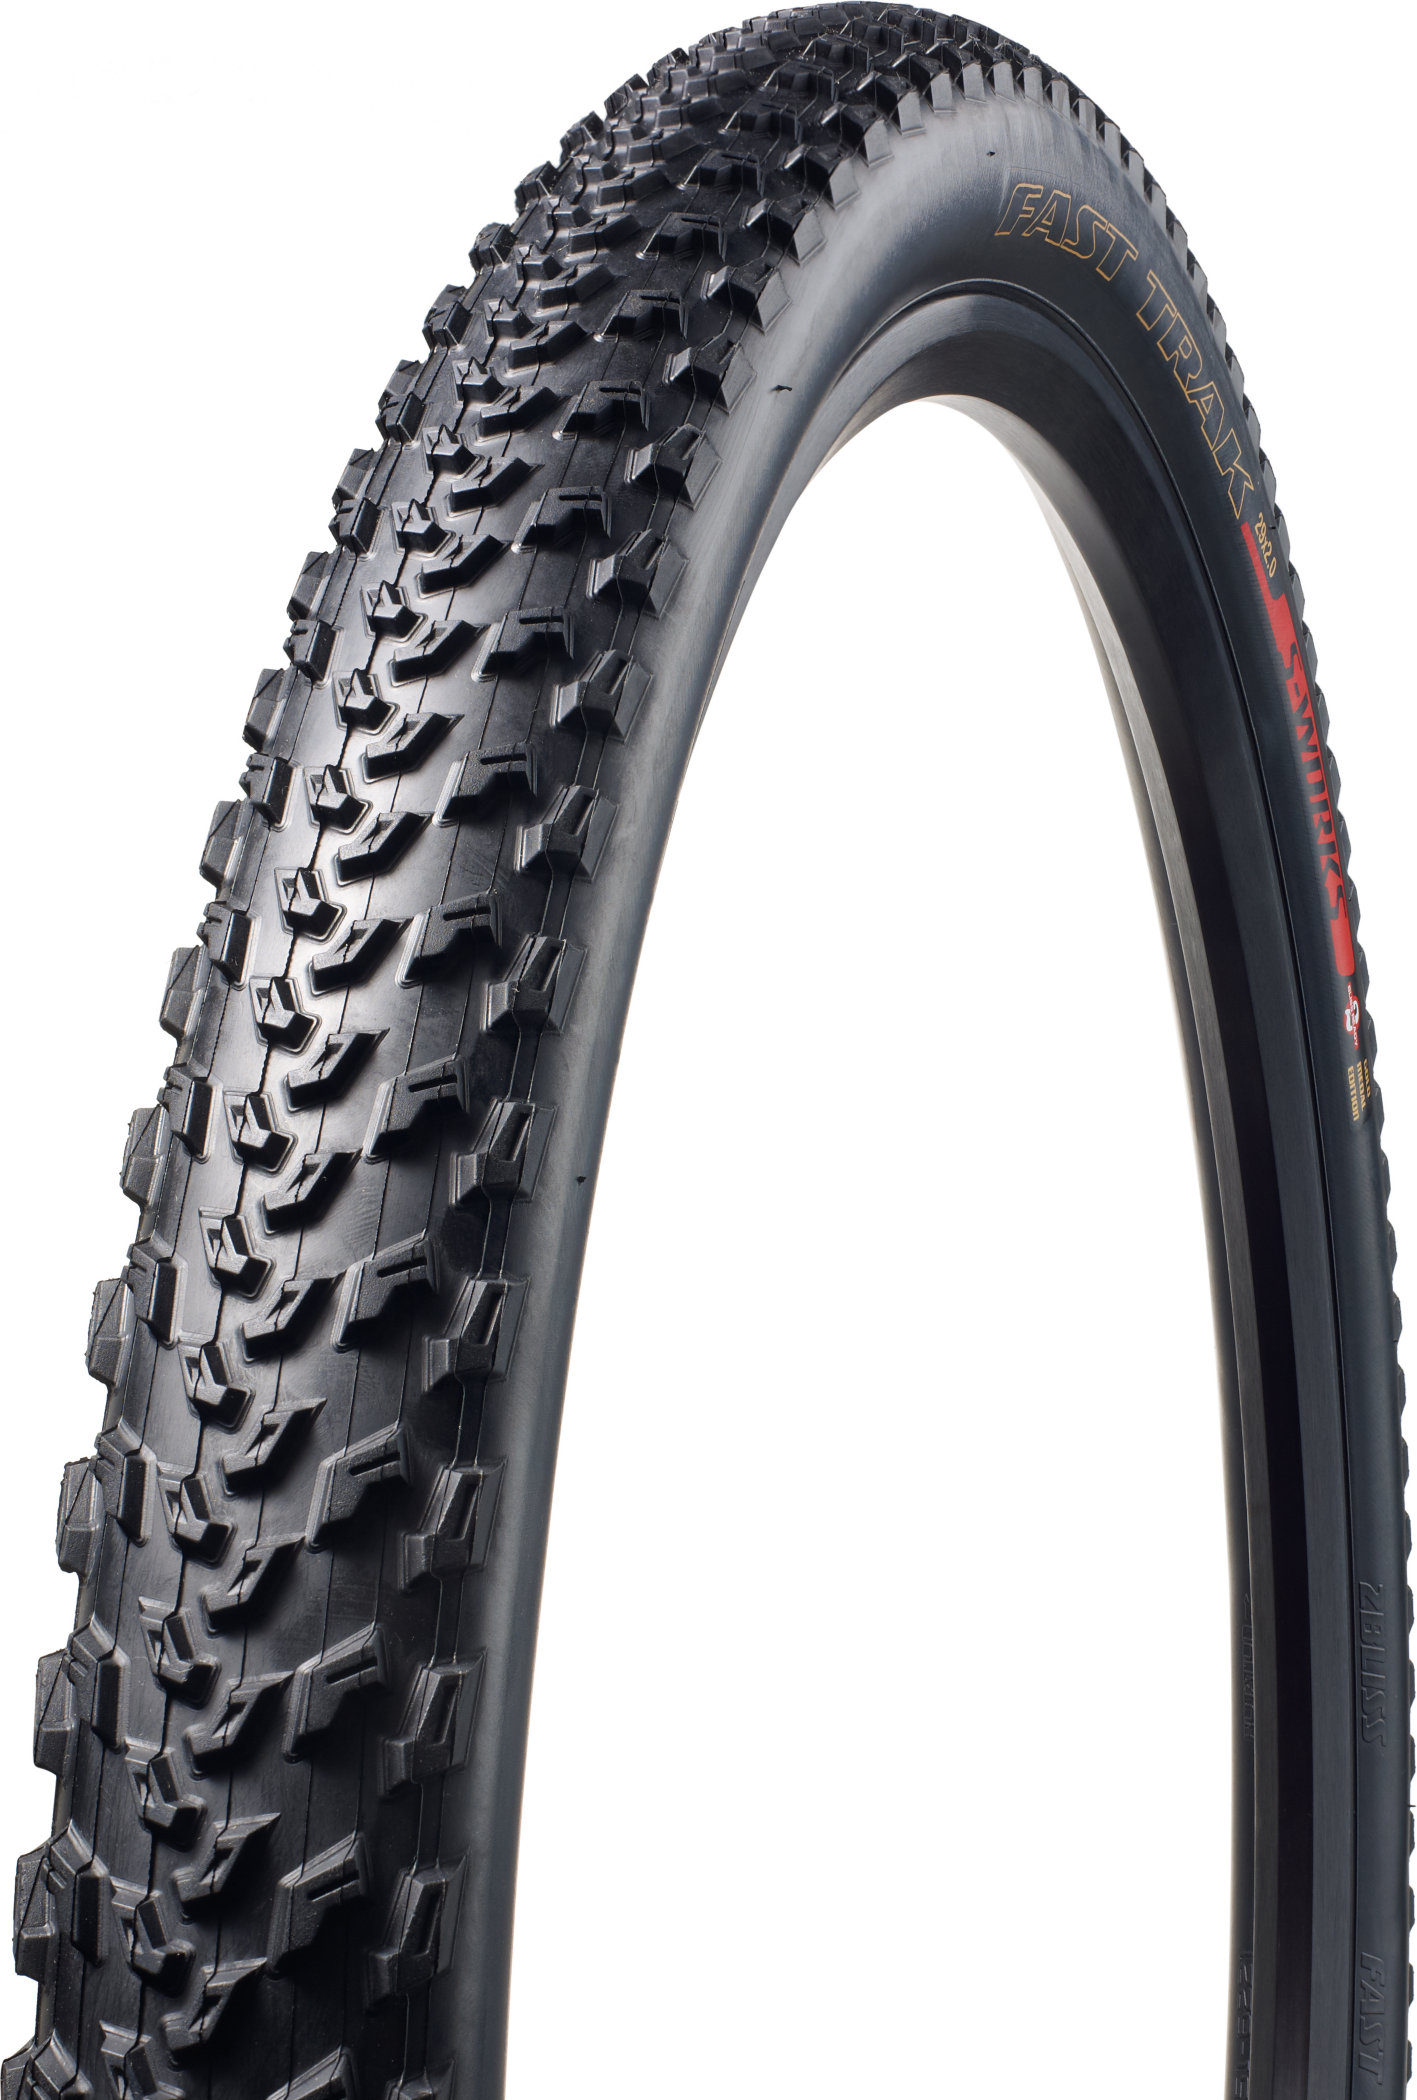 SPECIALIZED FAST TRAK CONTROL 2BR TIRE 29X2.2 - SPECIALIZED FAST TRAK CONTROL 2BR TIRE 29X2.2